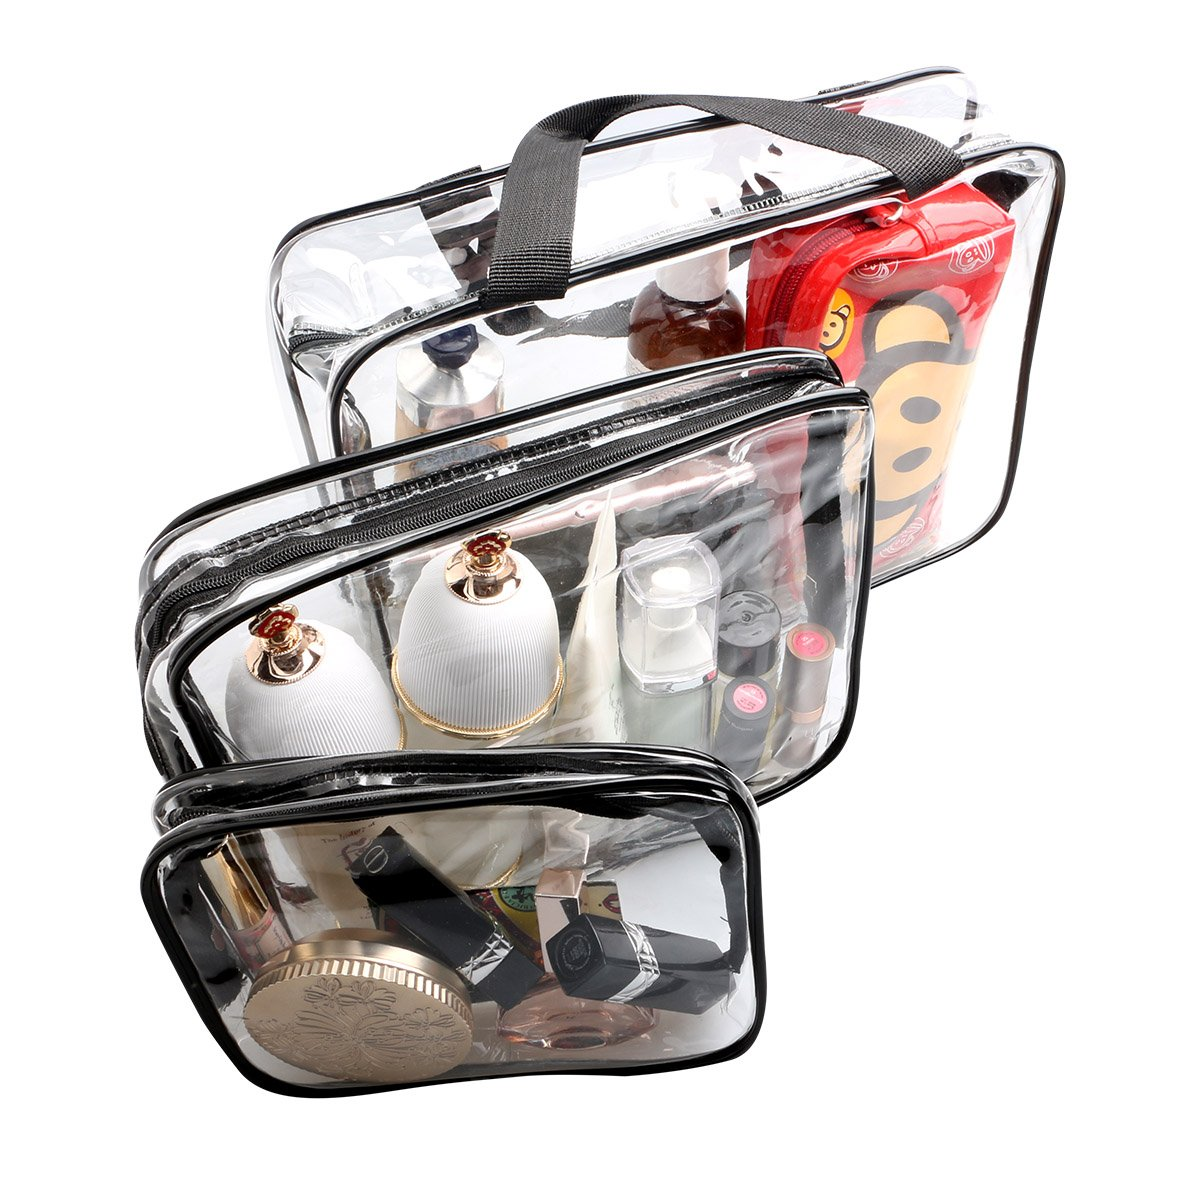 ESHOW 3 Set Clear Packing Cubes, PVC Waterproof Multi-function Hand Pouch Tote Bag Makeup Bag with Zipper and Travel to Buggy Bag for Toiletries Cosmetic and Bathroom Accessories (black) by WIFUME (Image #3)